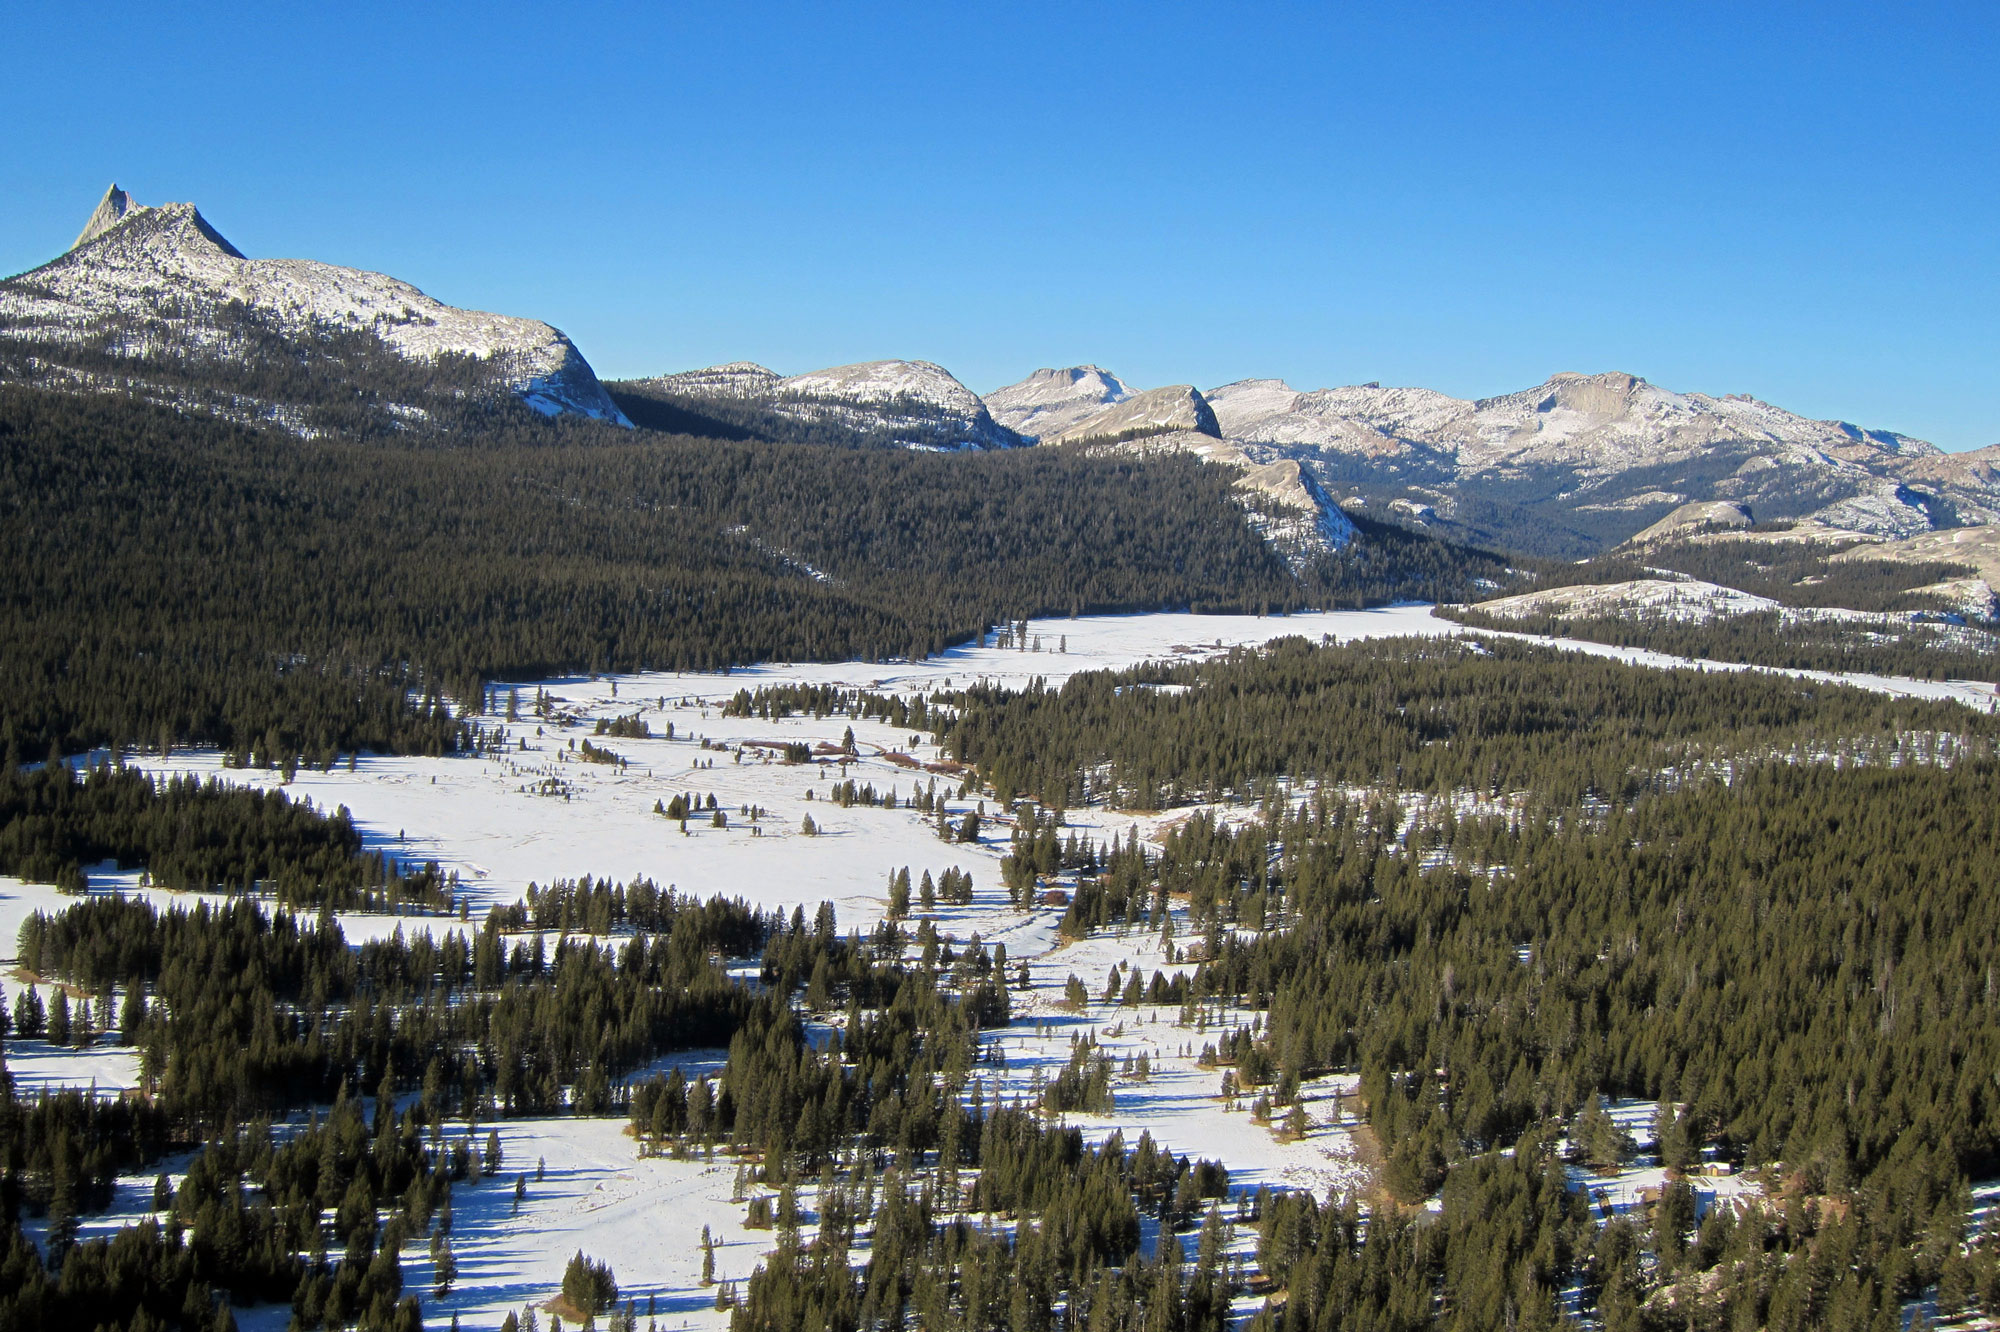 Tuolumne-Meadows-from-Lembert-Dome-on-January-4,-2014